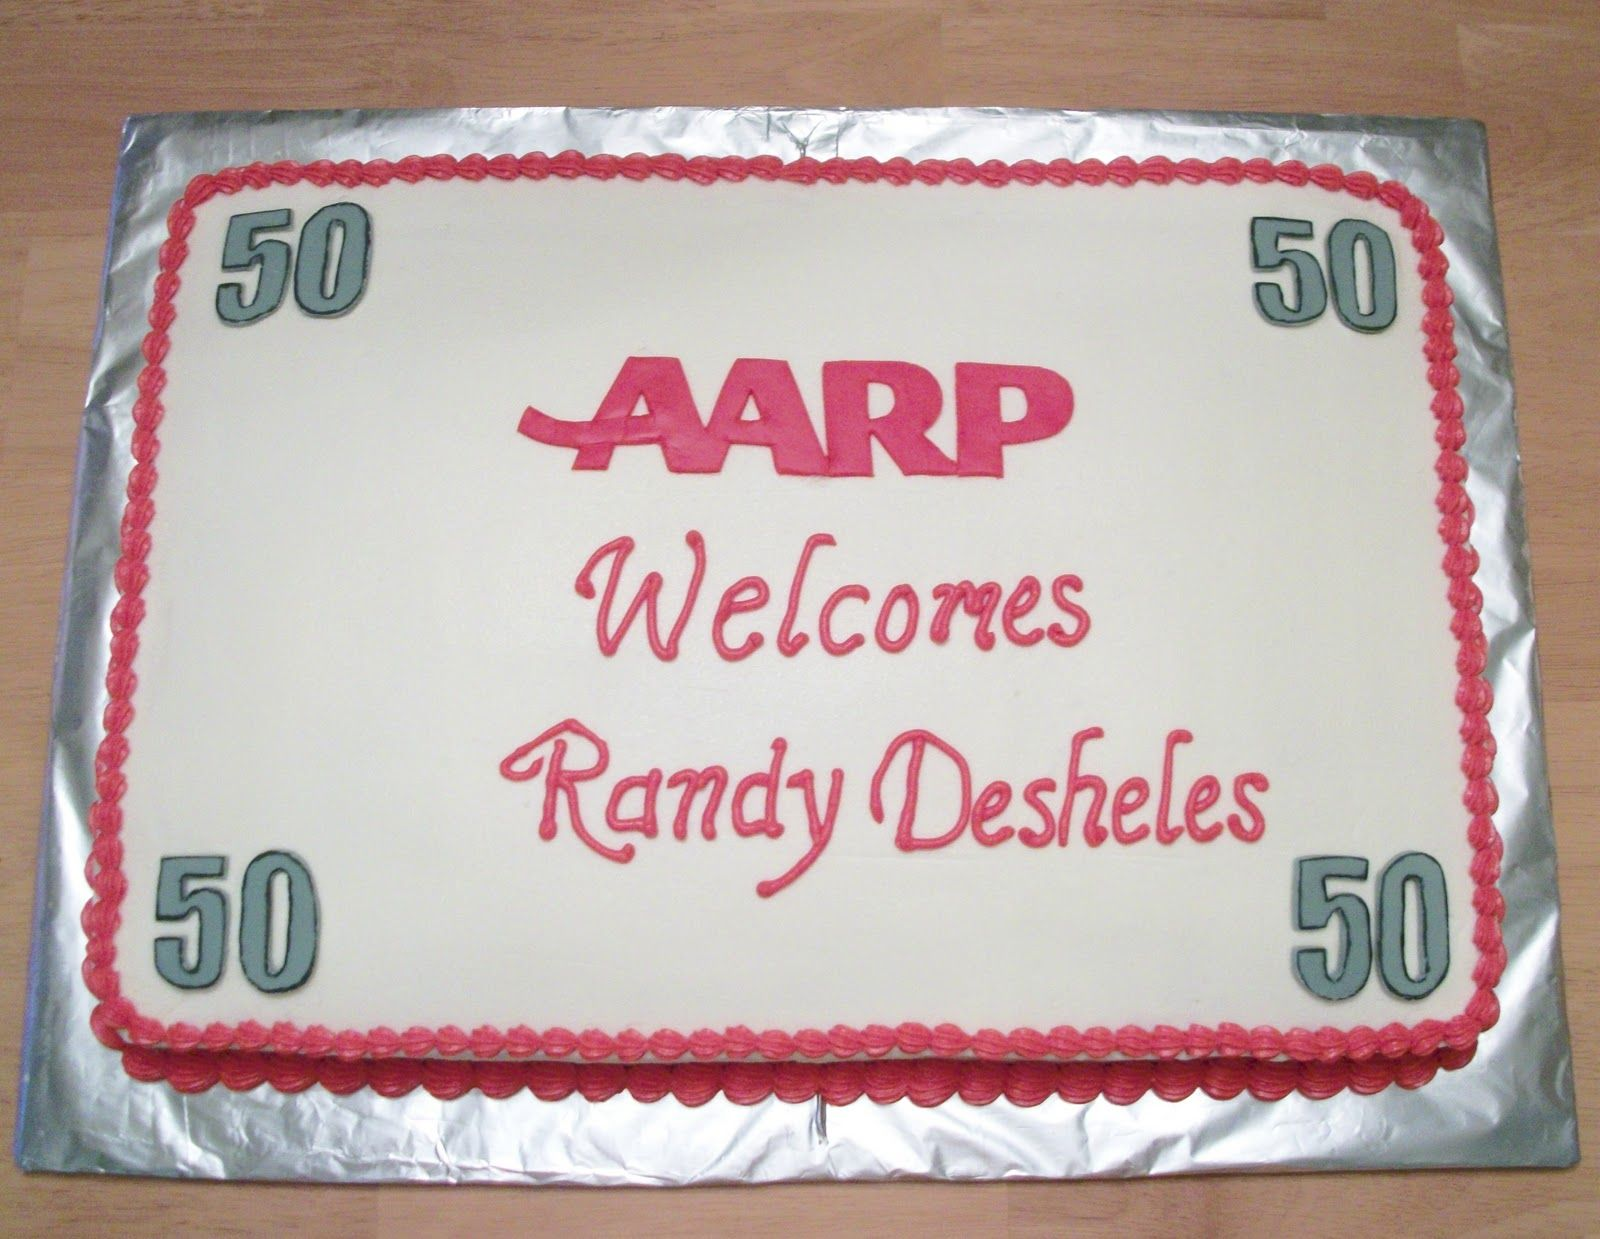 Aarp to 50 cake 50th birthday party favors and